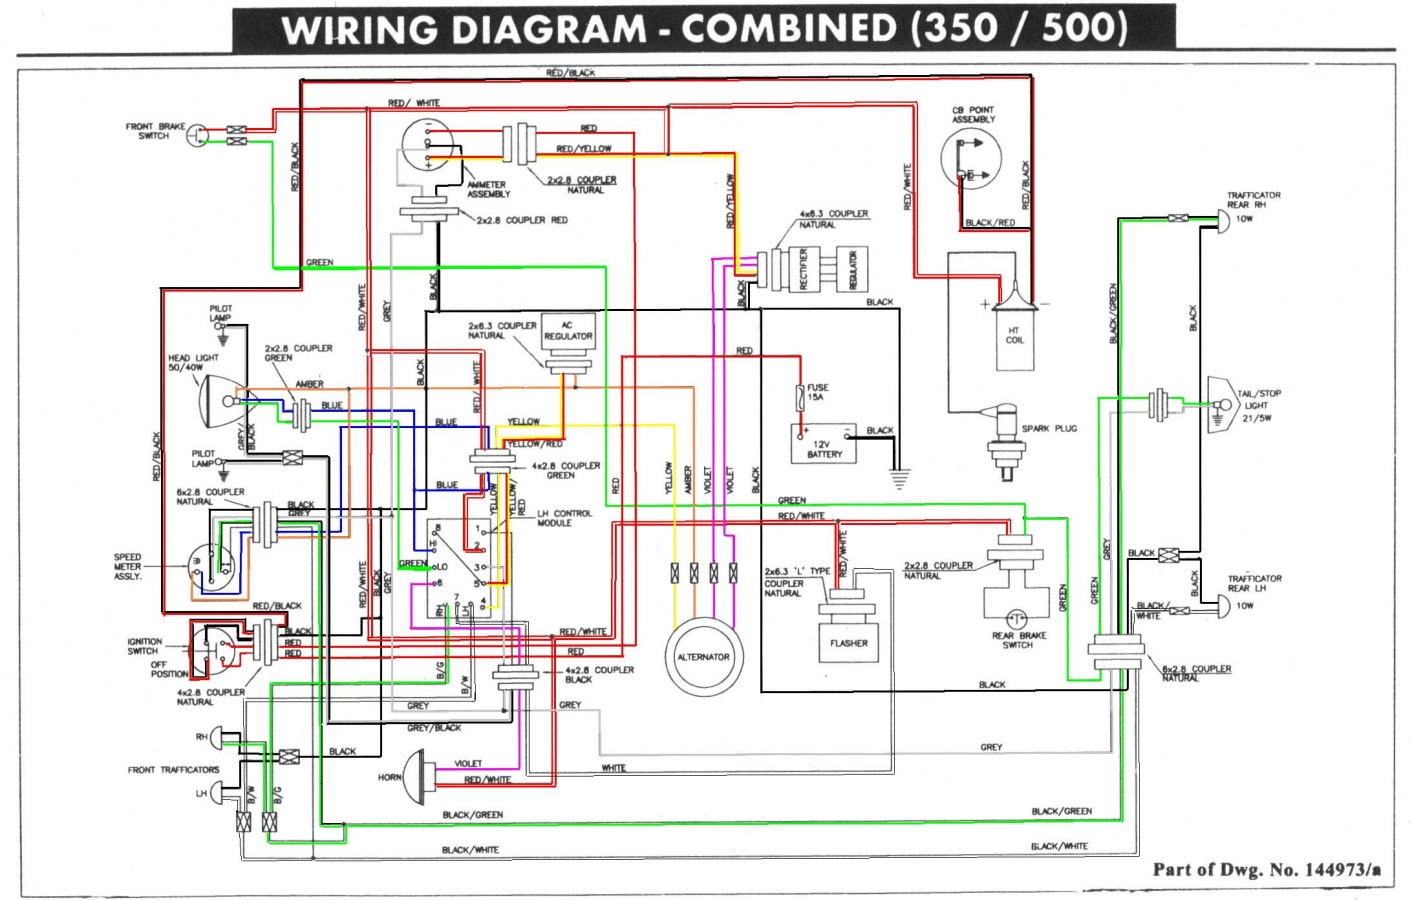 diagrams 640480 royal enfield engine diagram royal enfield royal enfield thunderbird 350 wiring diagram at reclaimingppi.co